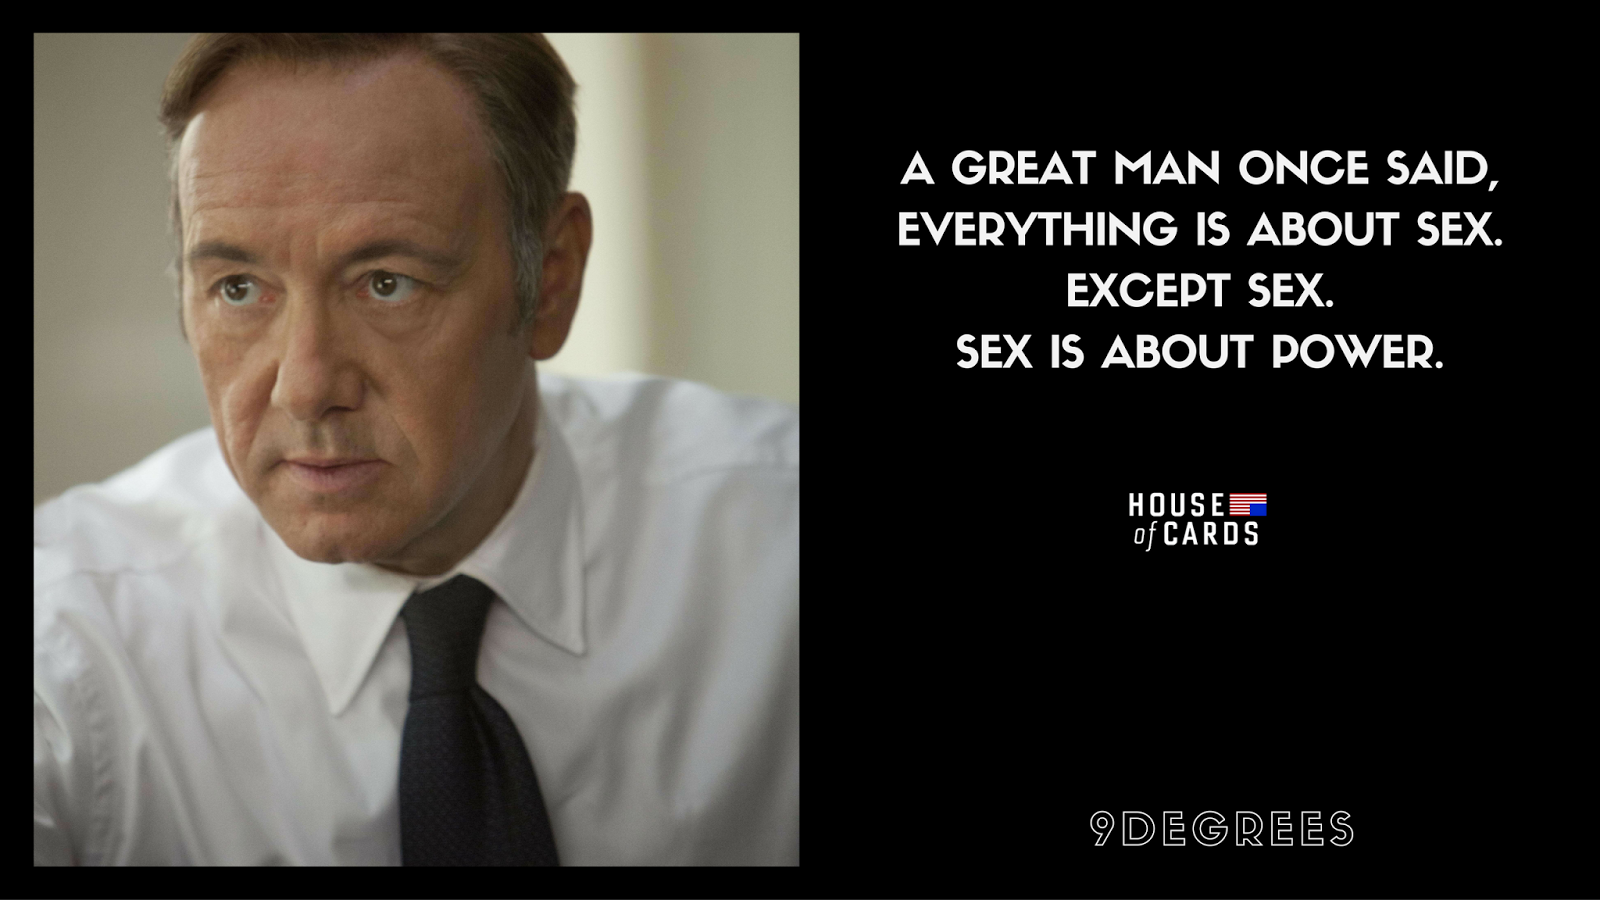 house of cards season 1 quotes - Google Search | Quotes ...